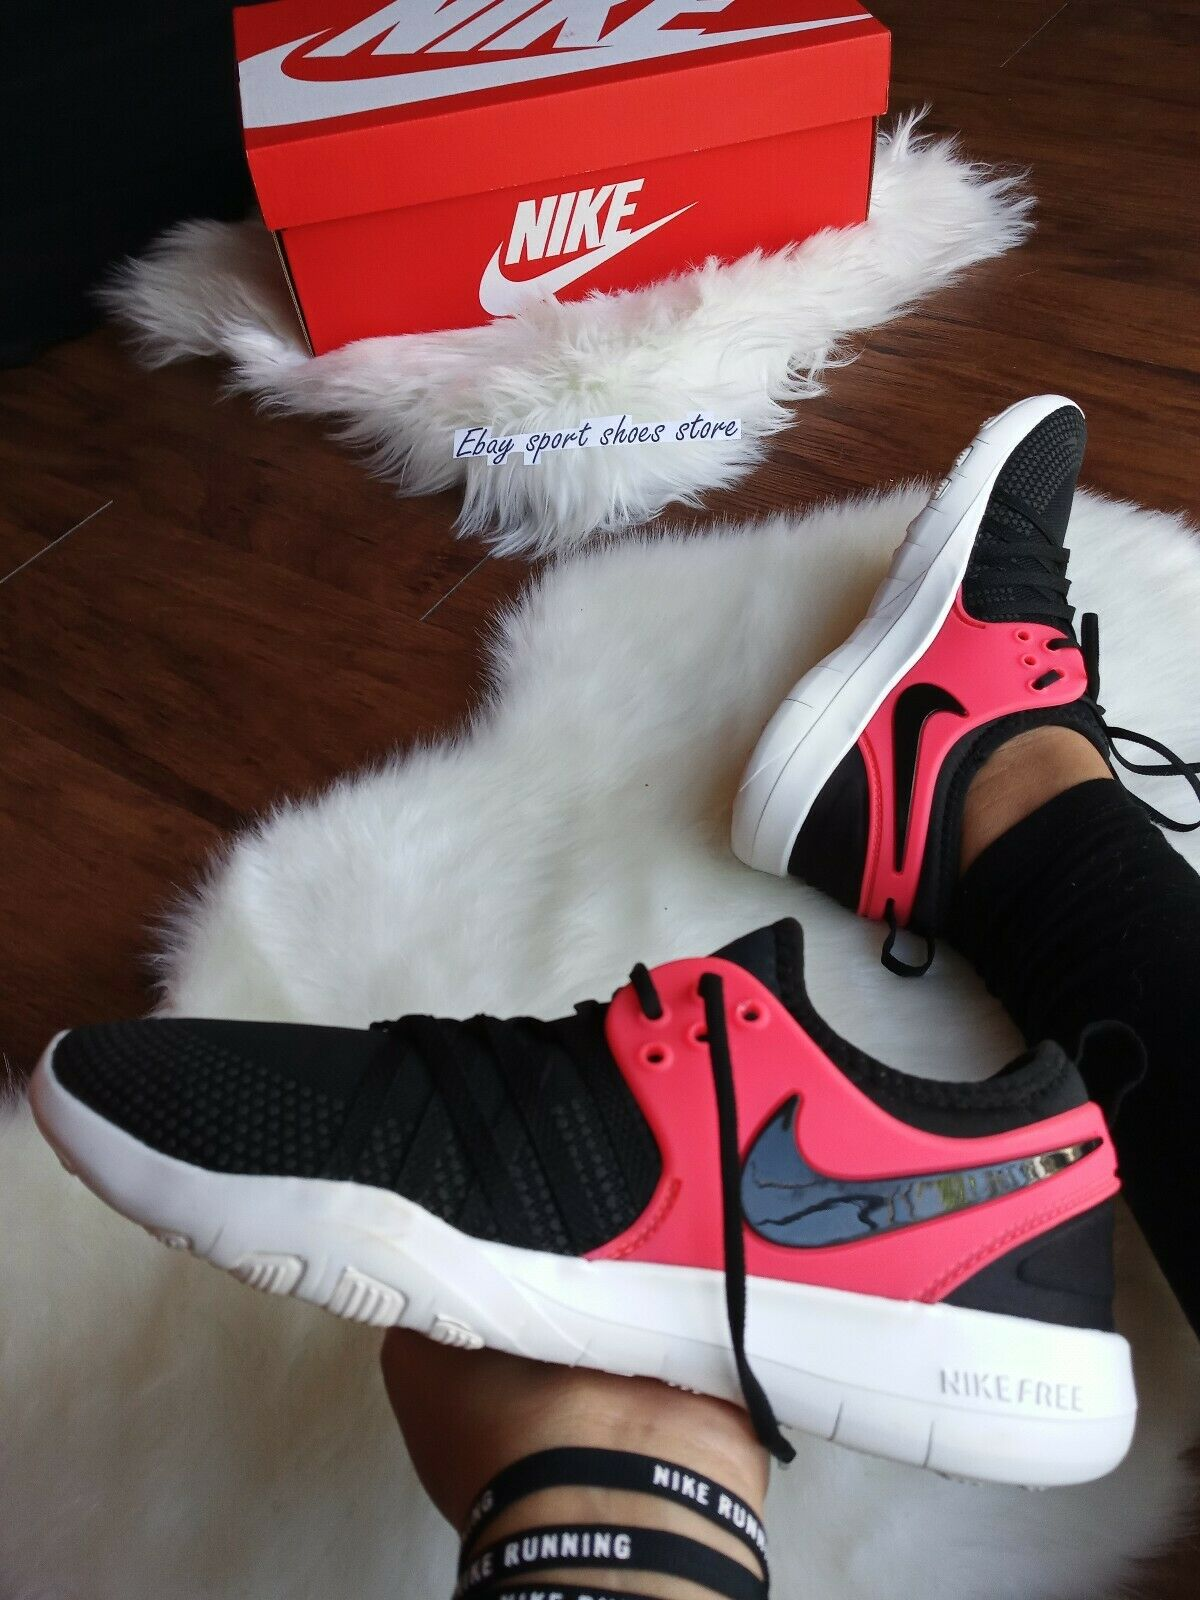 Size 10 WOMEN'S Nike air max free tr running casual shoes Black pink 011